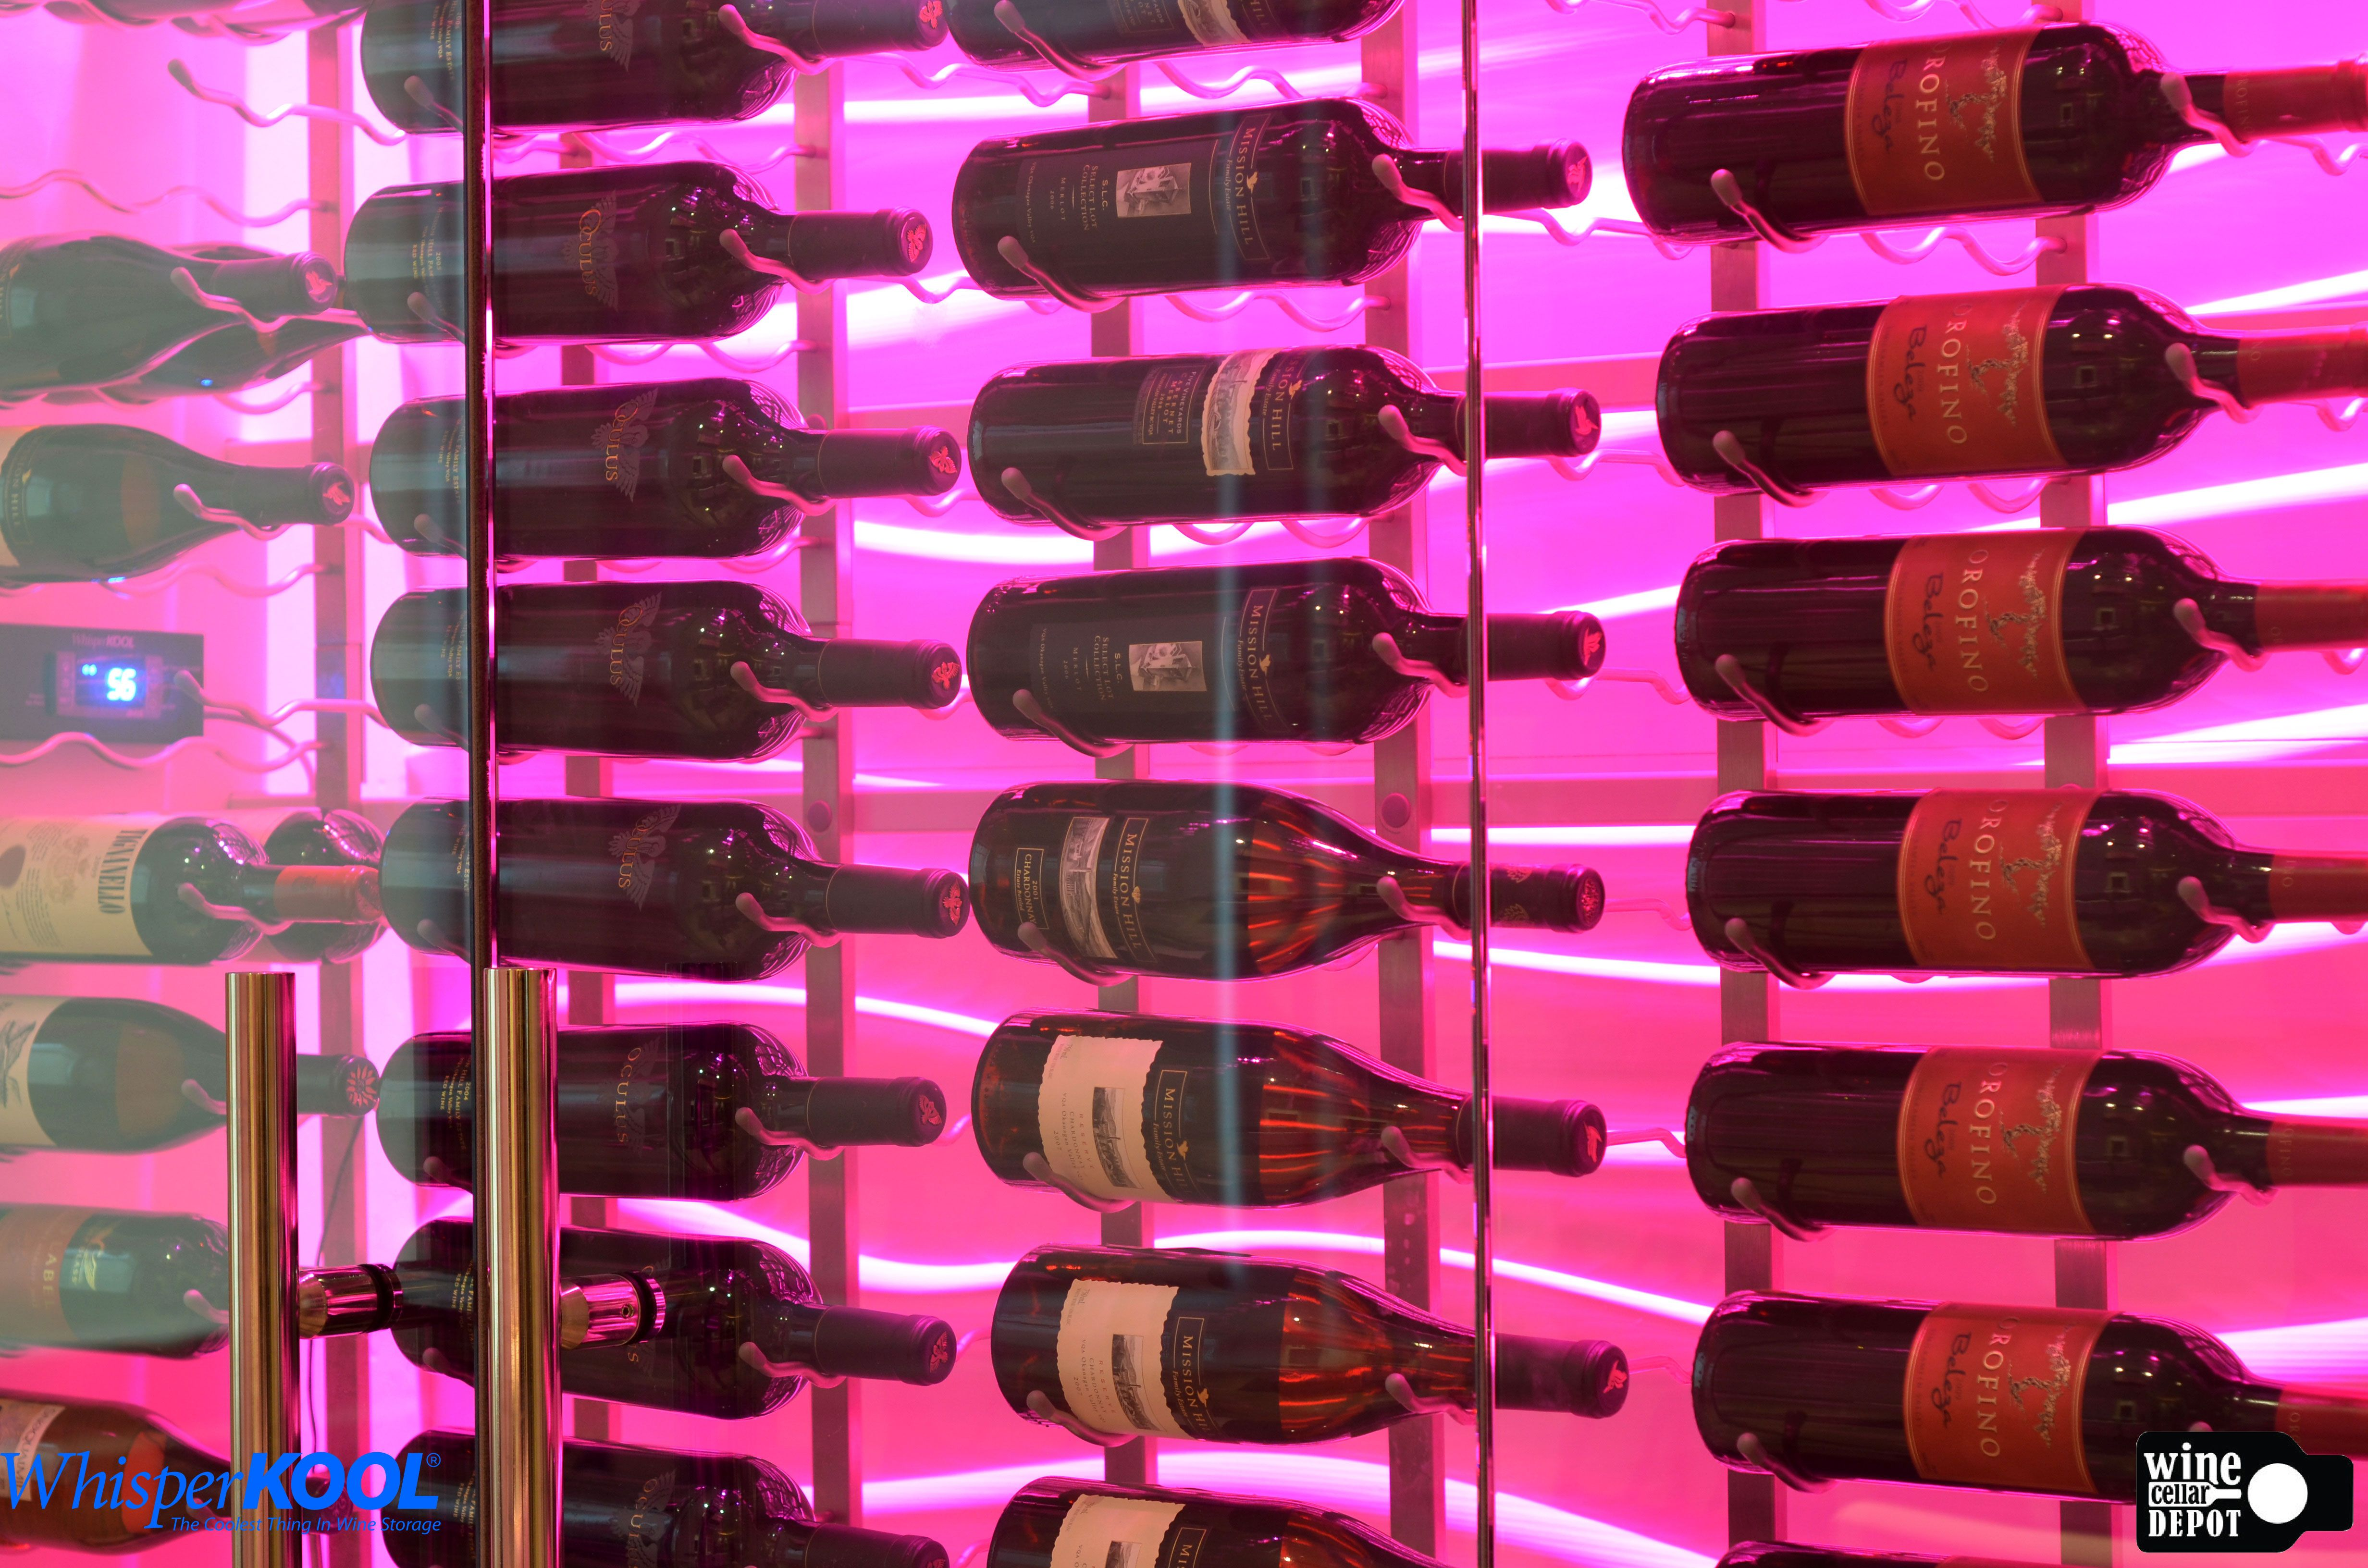 Another Absolutely Stunning Winecellar Designed By Our Friends